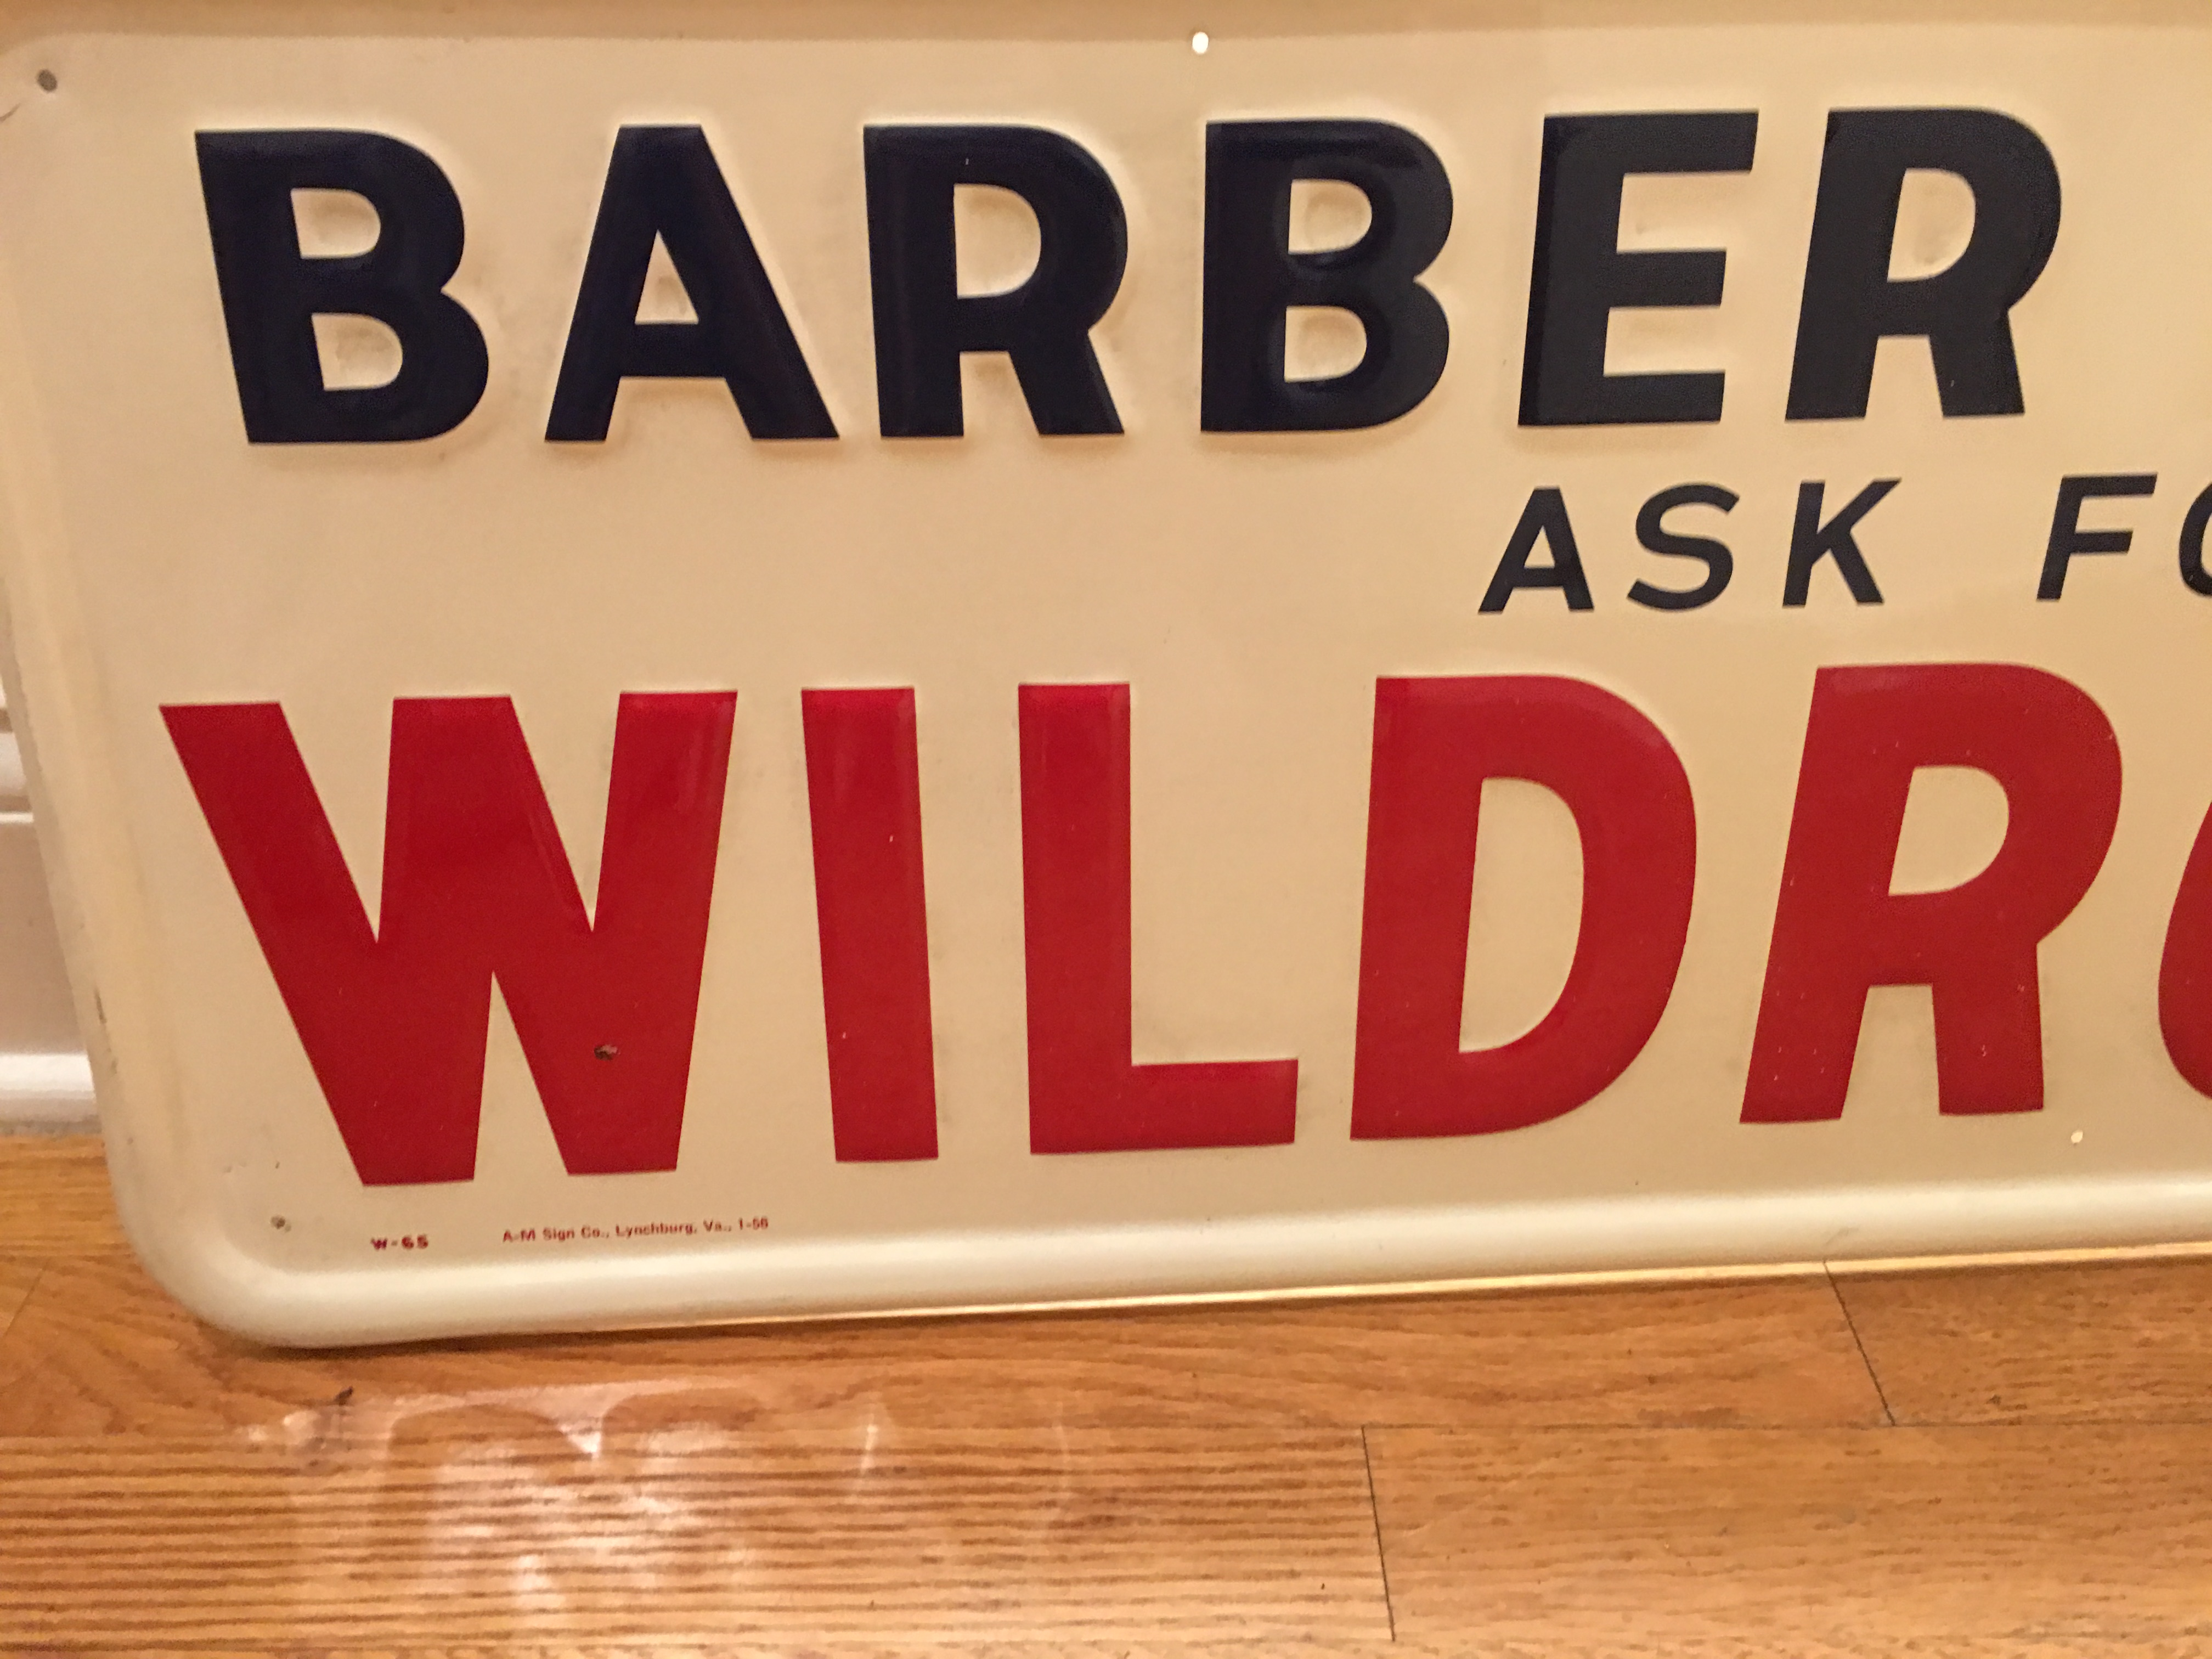 Antique barber shop signs - Antique Barber Shop Ask For Wildroot Advertising Sign Mint Condition